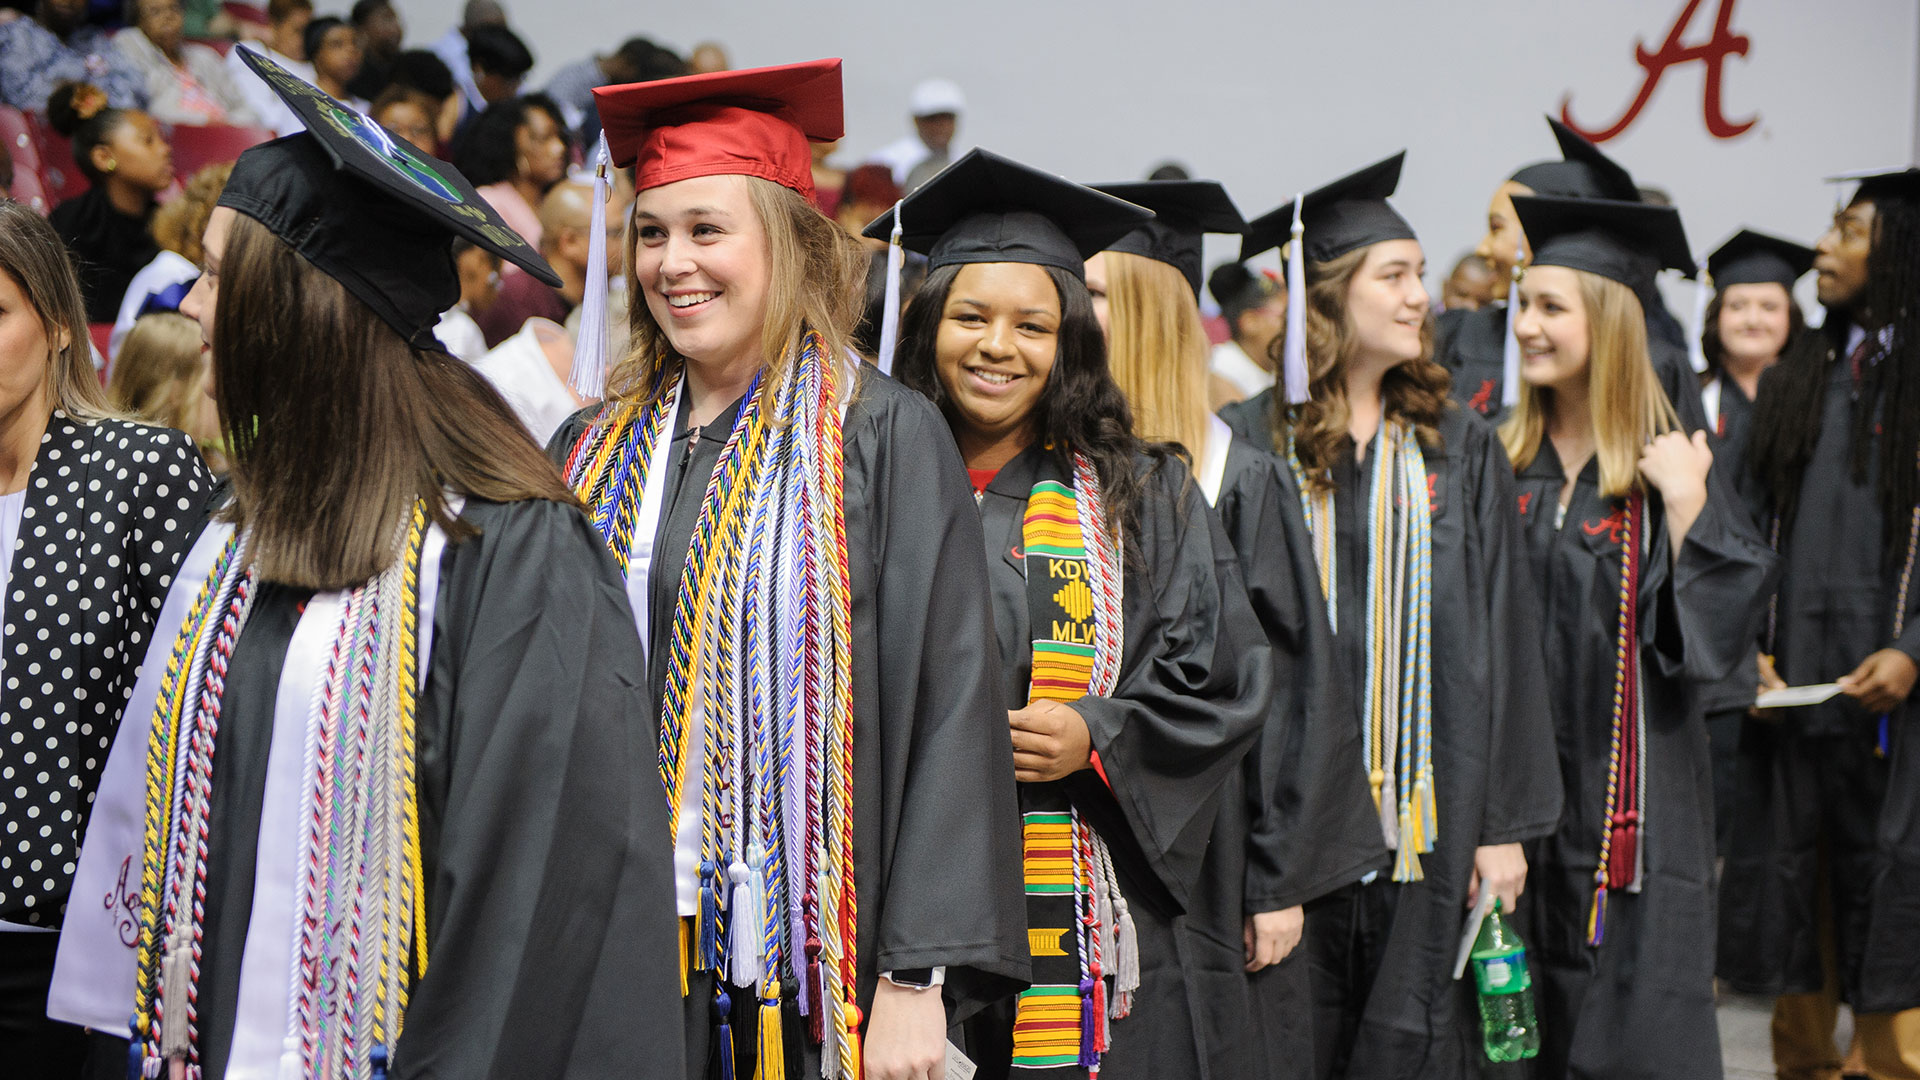 graduates standing in line to be seated during the commencement opening ceremony.